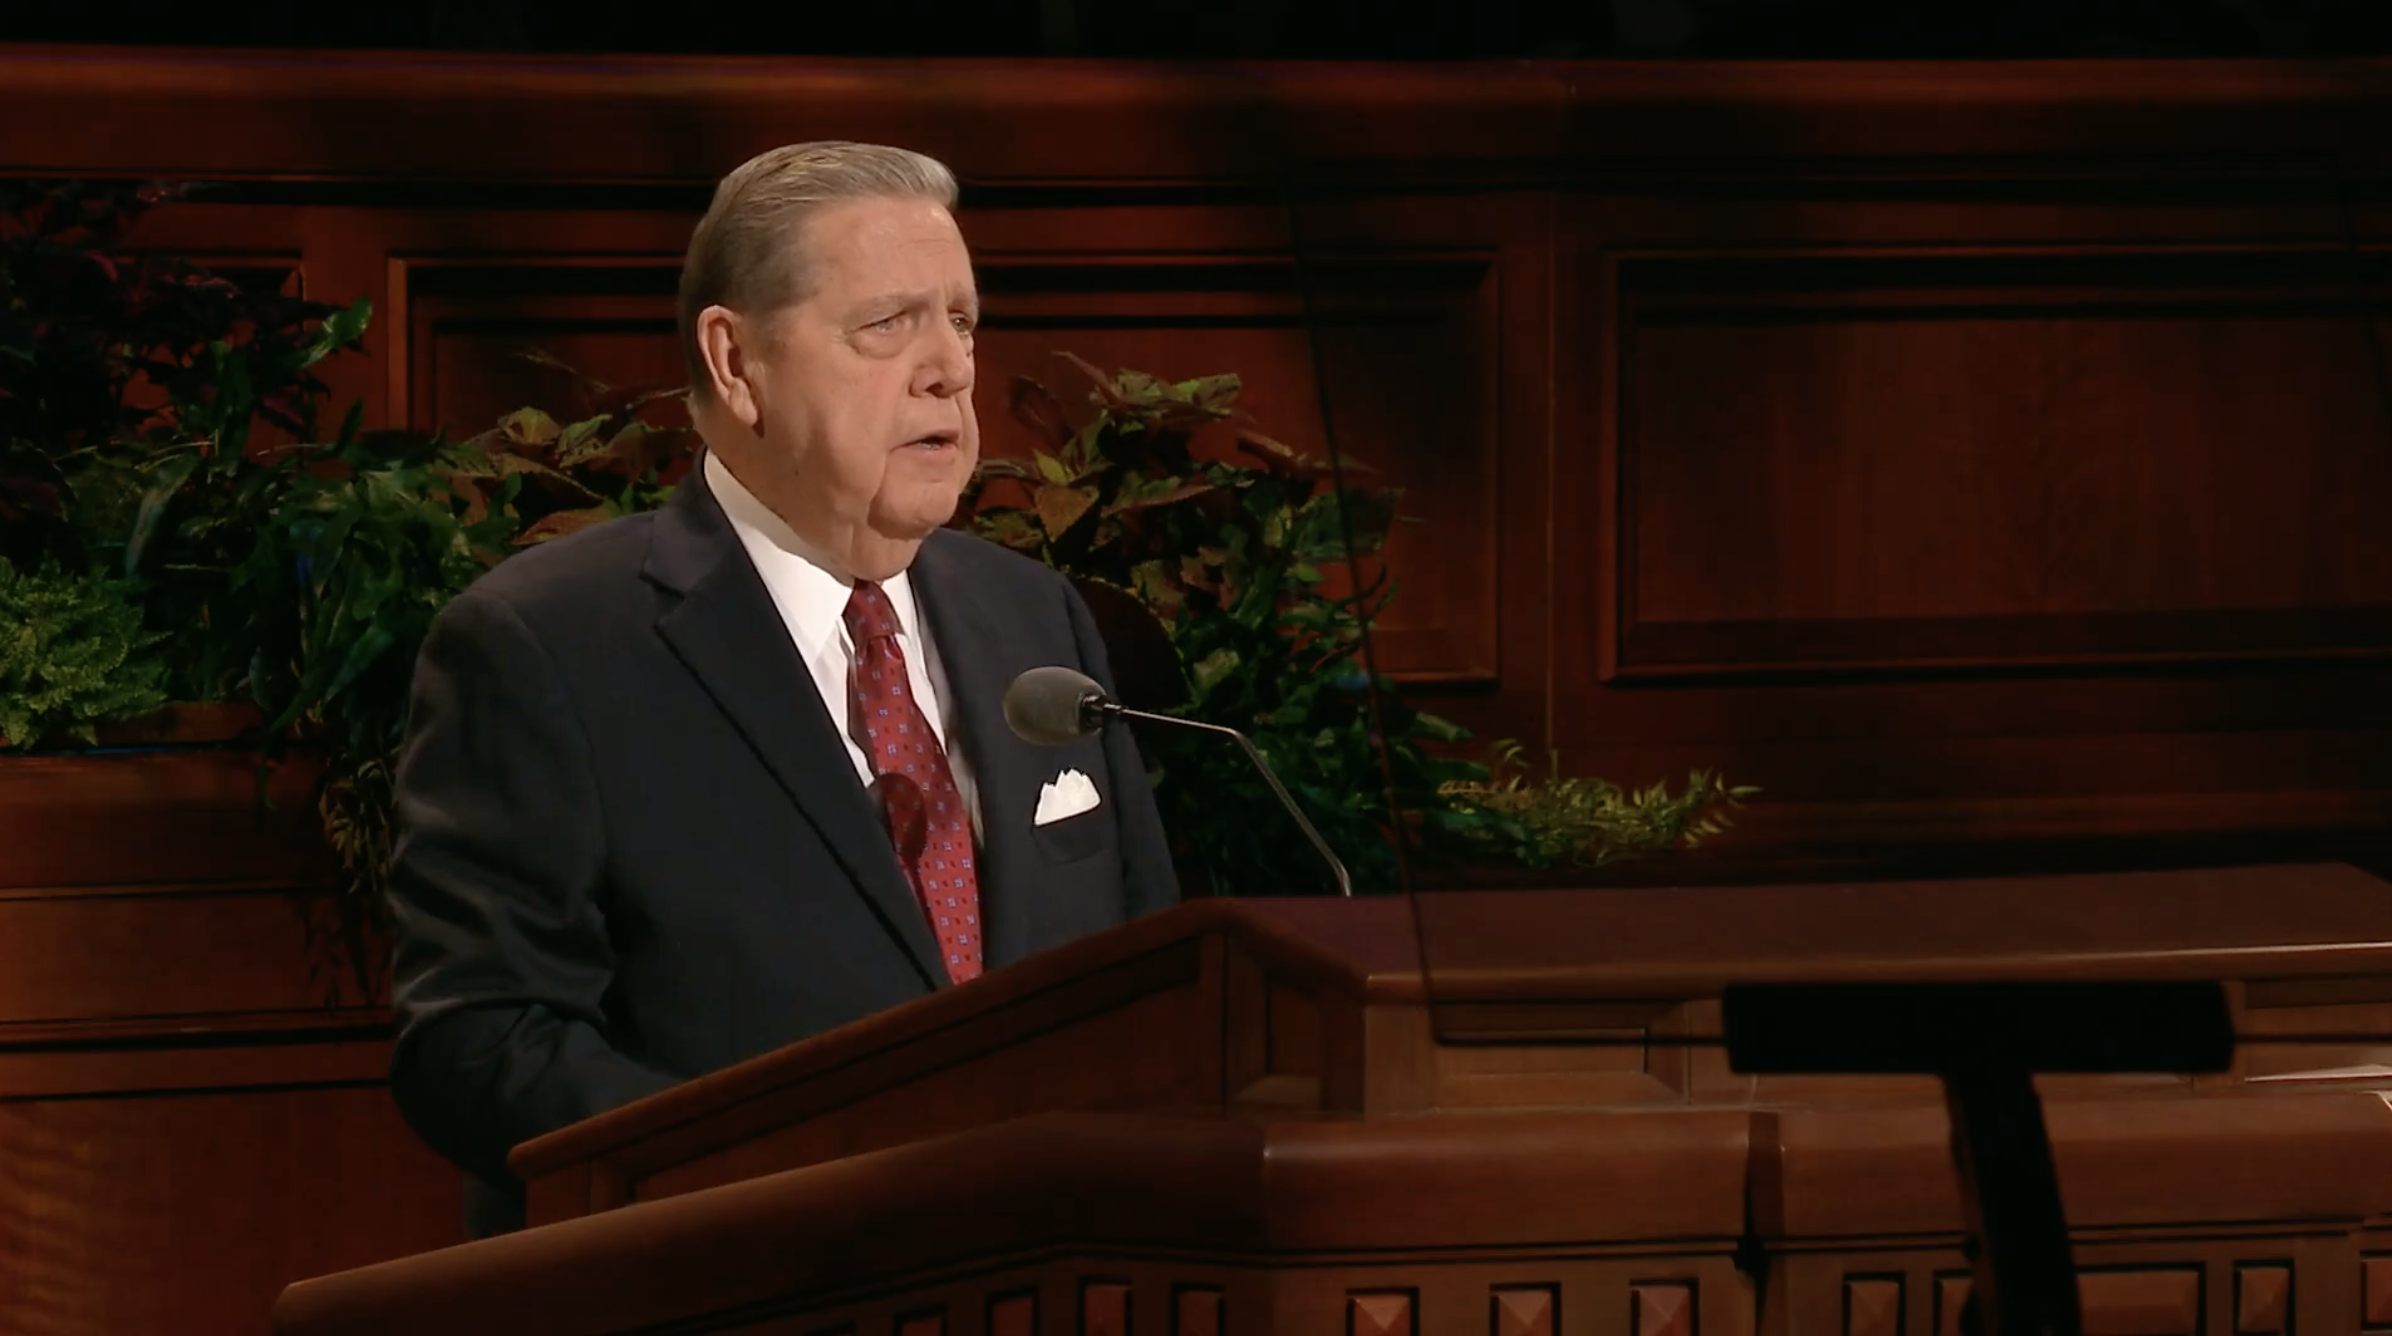 Elder Jeffrey R. Holland of the Quorum of the Twelve Apostles speaks during the Saturday morning session in the 189th Semiannual General Conference of the Church on Oct. 5, 2019.